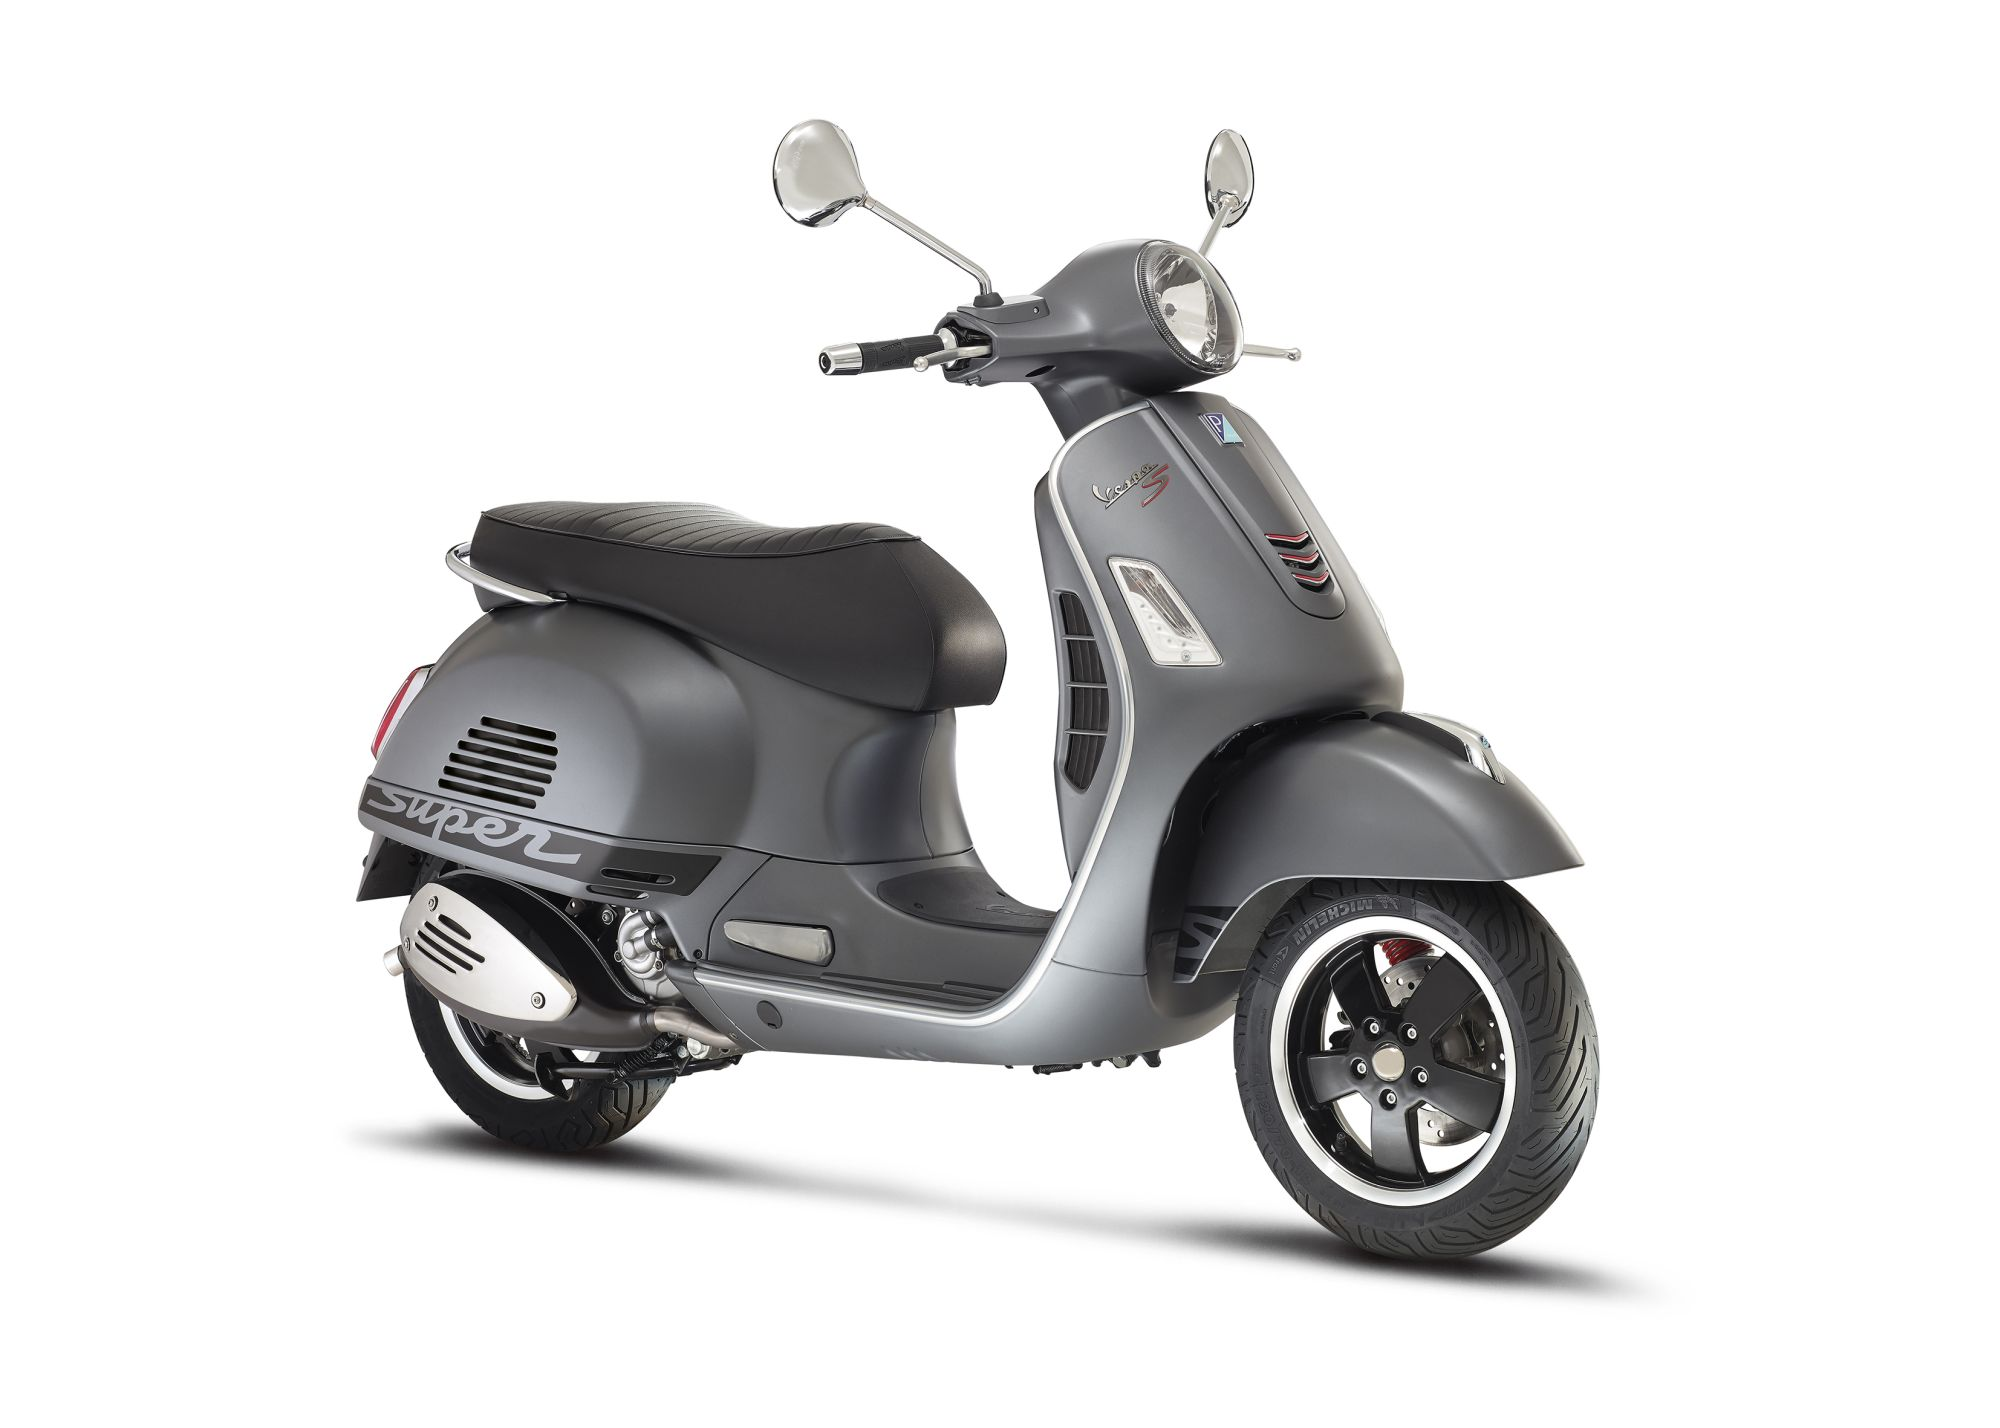 vespa gts 300 i e super sport bilder und technische daten. Black Bedroom Furniture Sets. Home Design Ideas